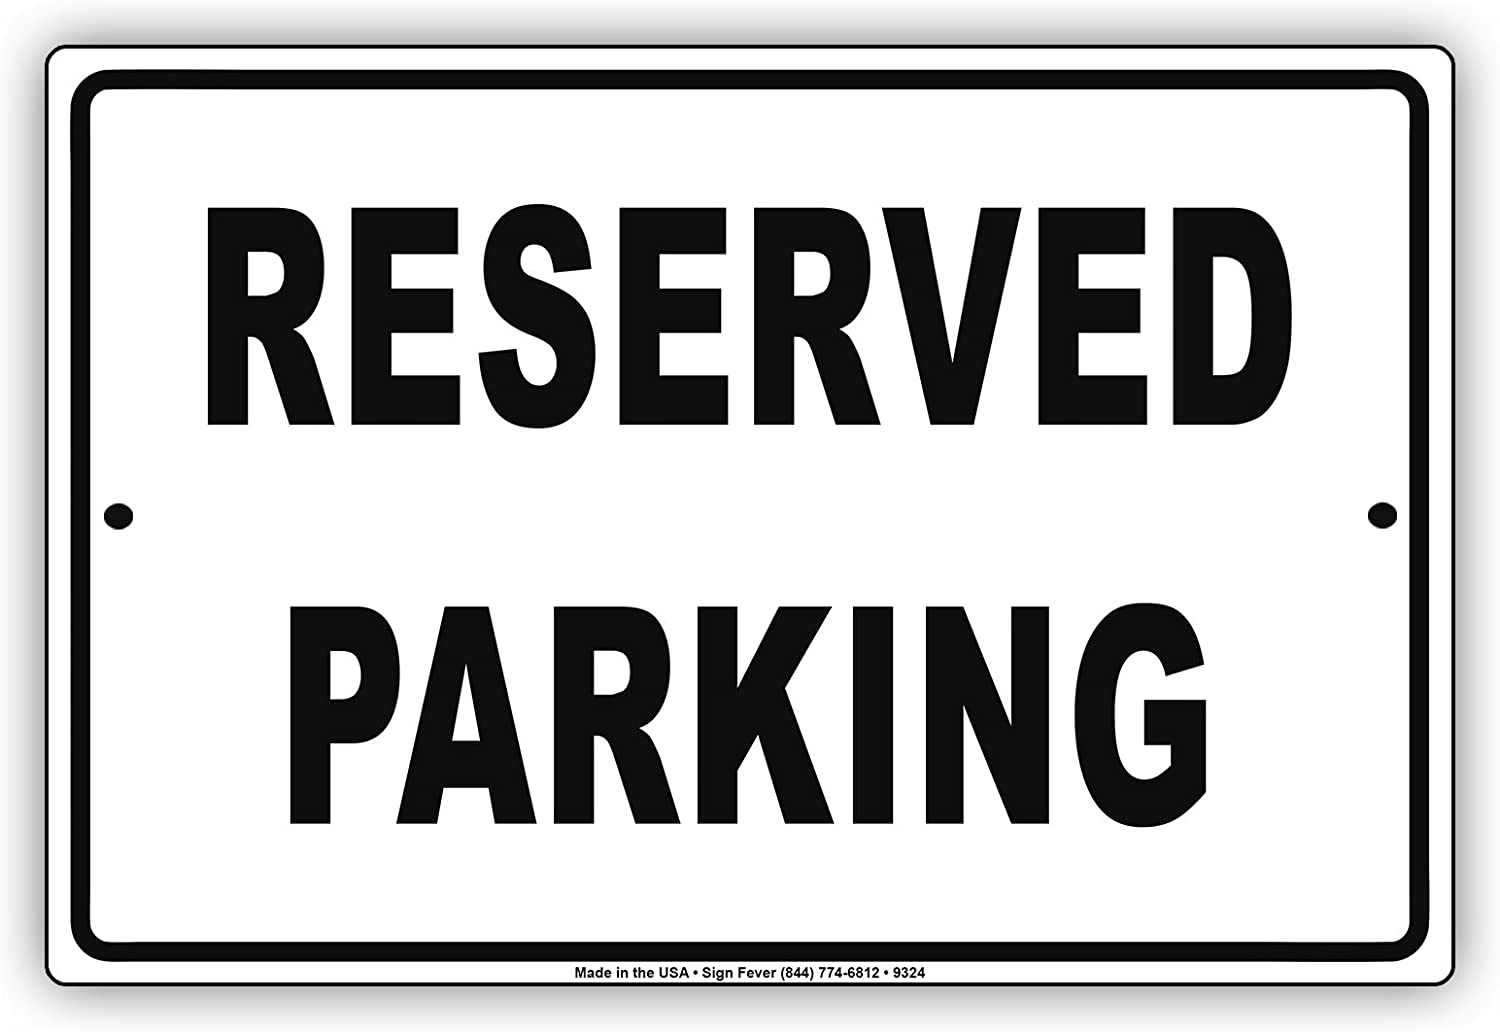 Reserved Parking Black Letters Restricted Spot No Parking Warning Caution Notice Aluminum Metal Tin 8x12 Sign Plate